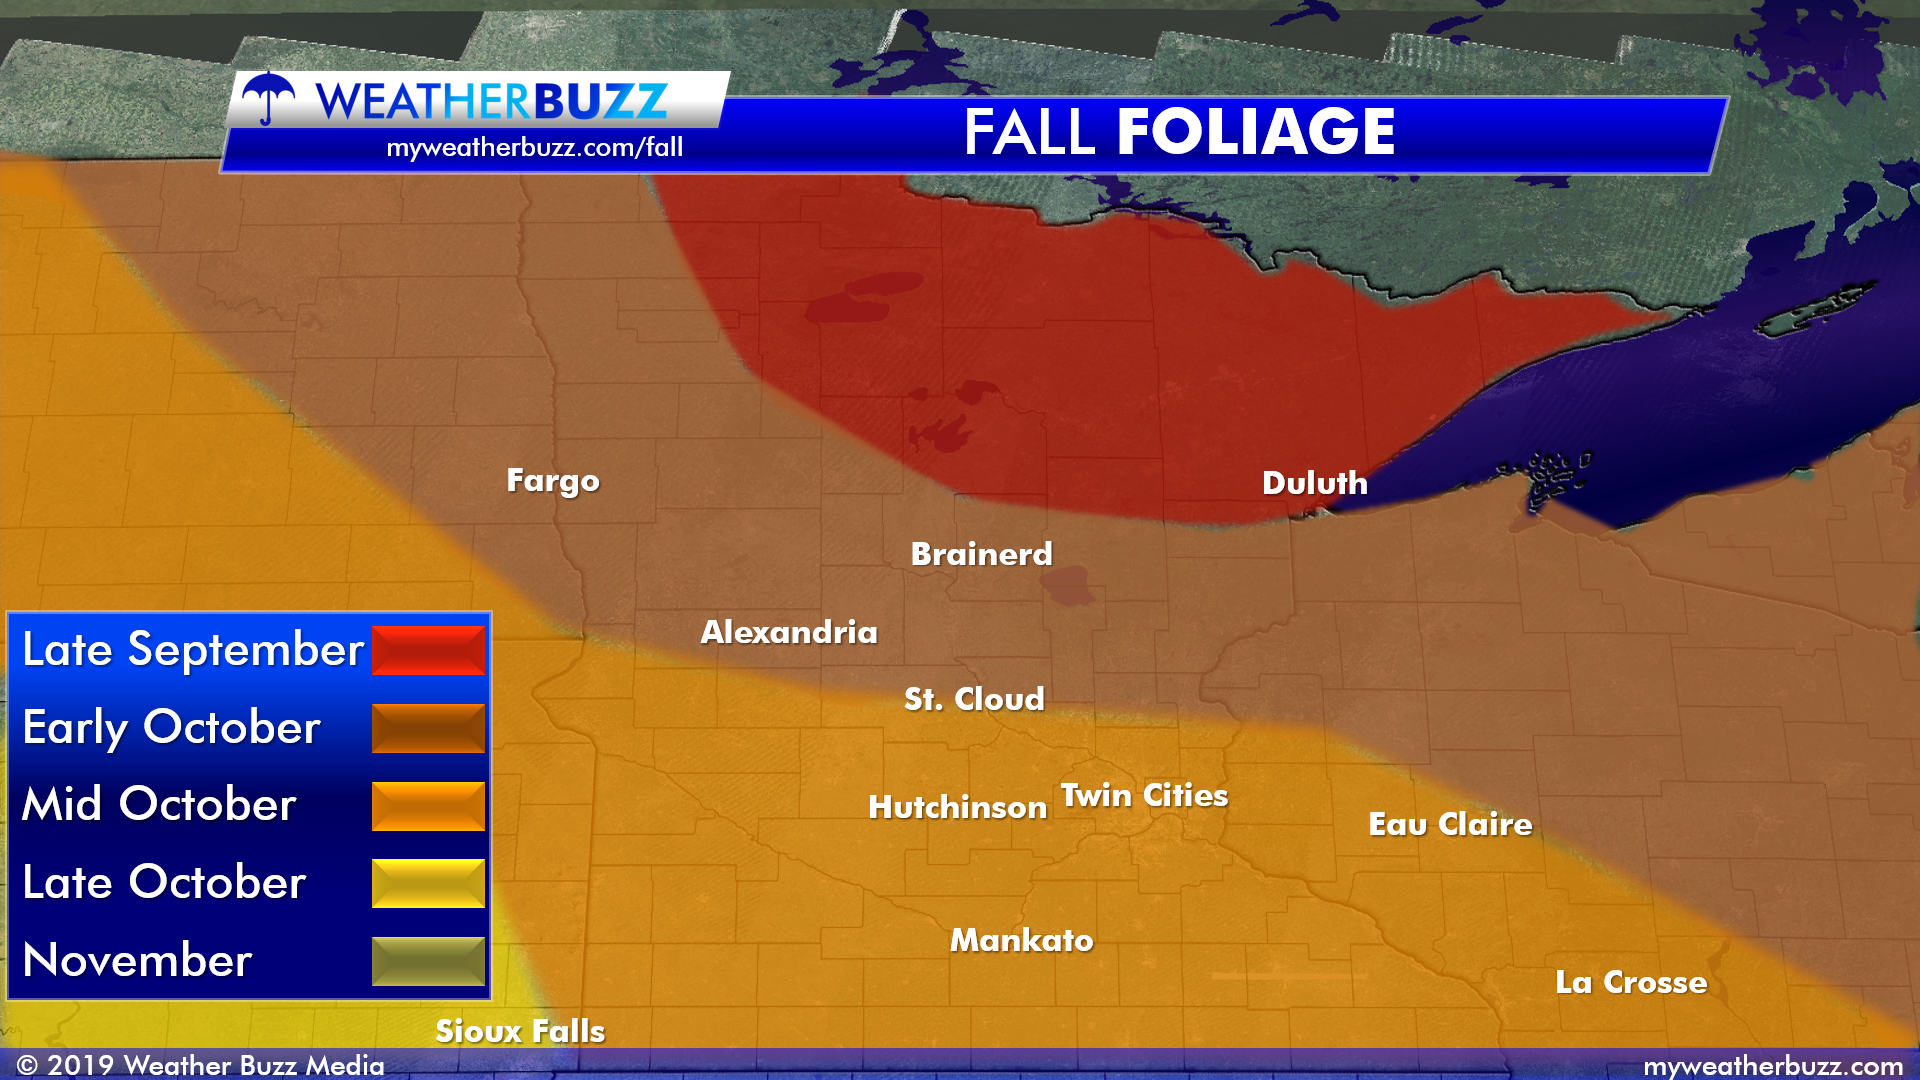 Fall Foliage Map for Minnesota